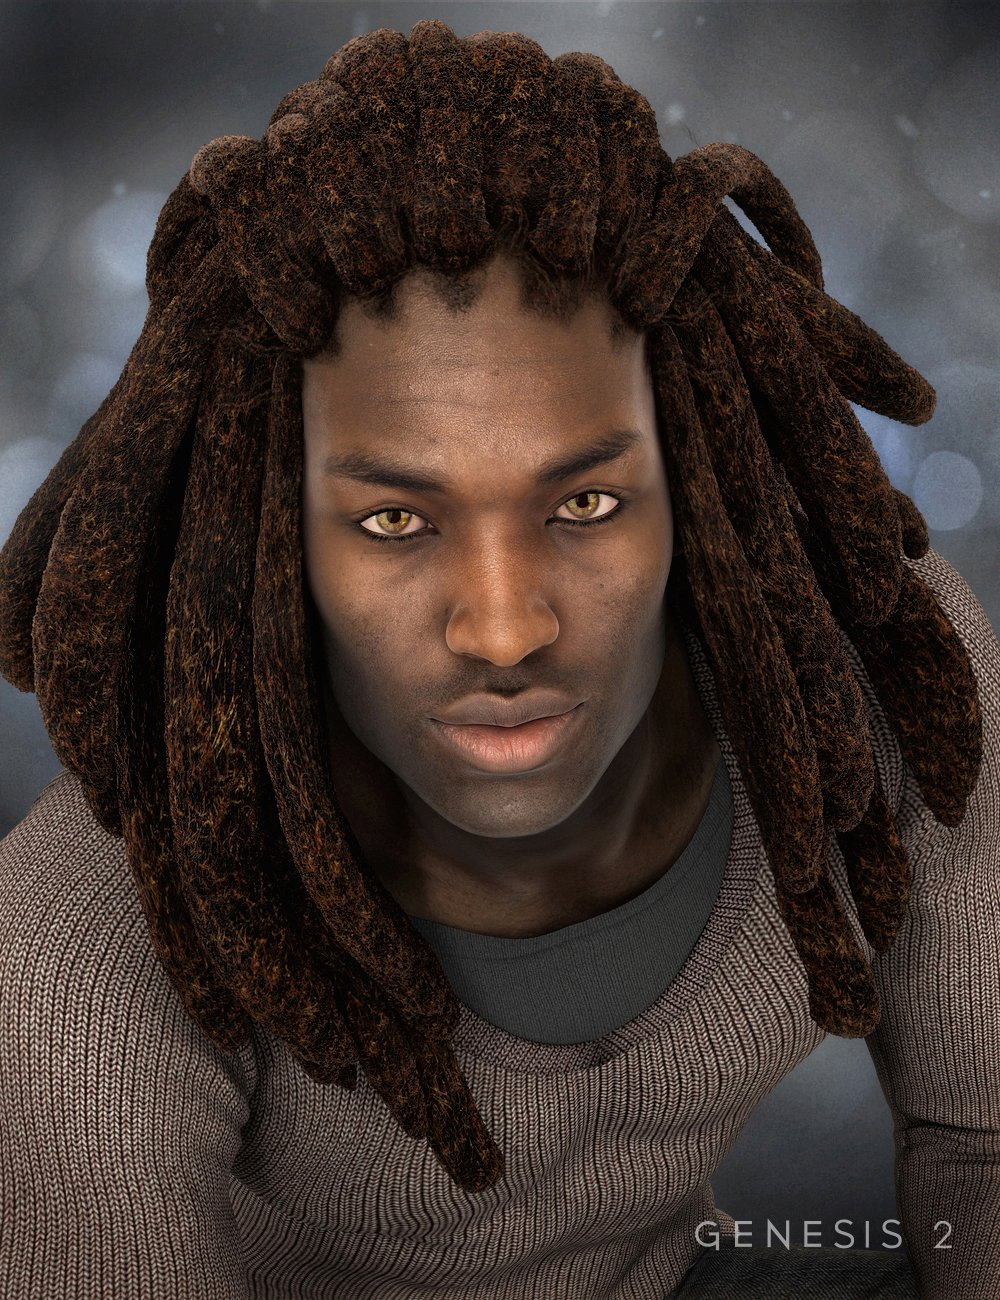 Messy Dreads for Genesis 2 Male(s) by: 3DCelebrity, 3D Models by Daz 3D